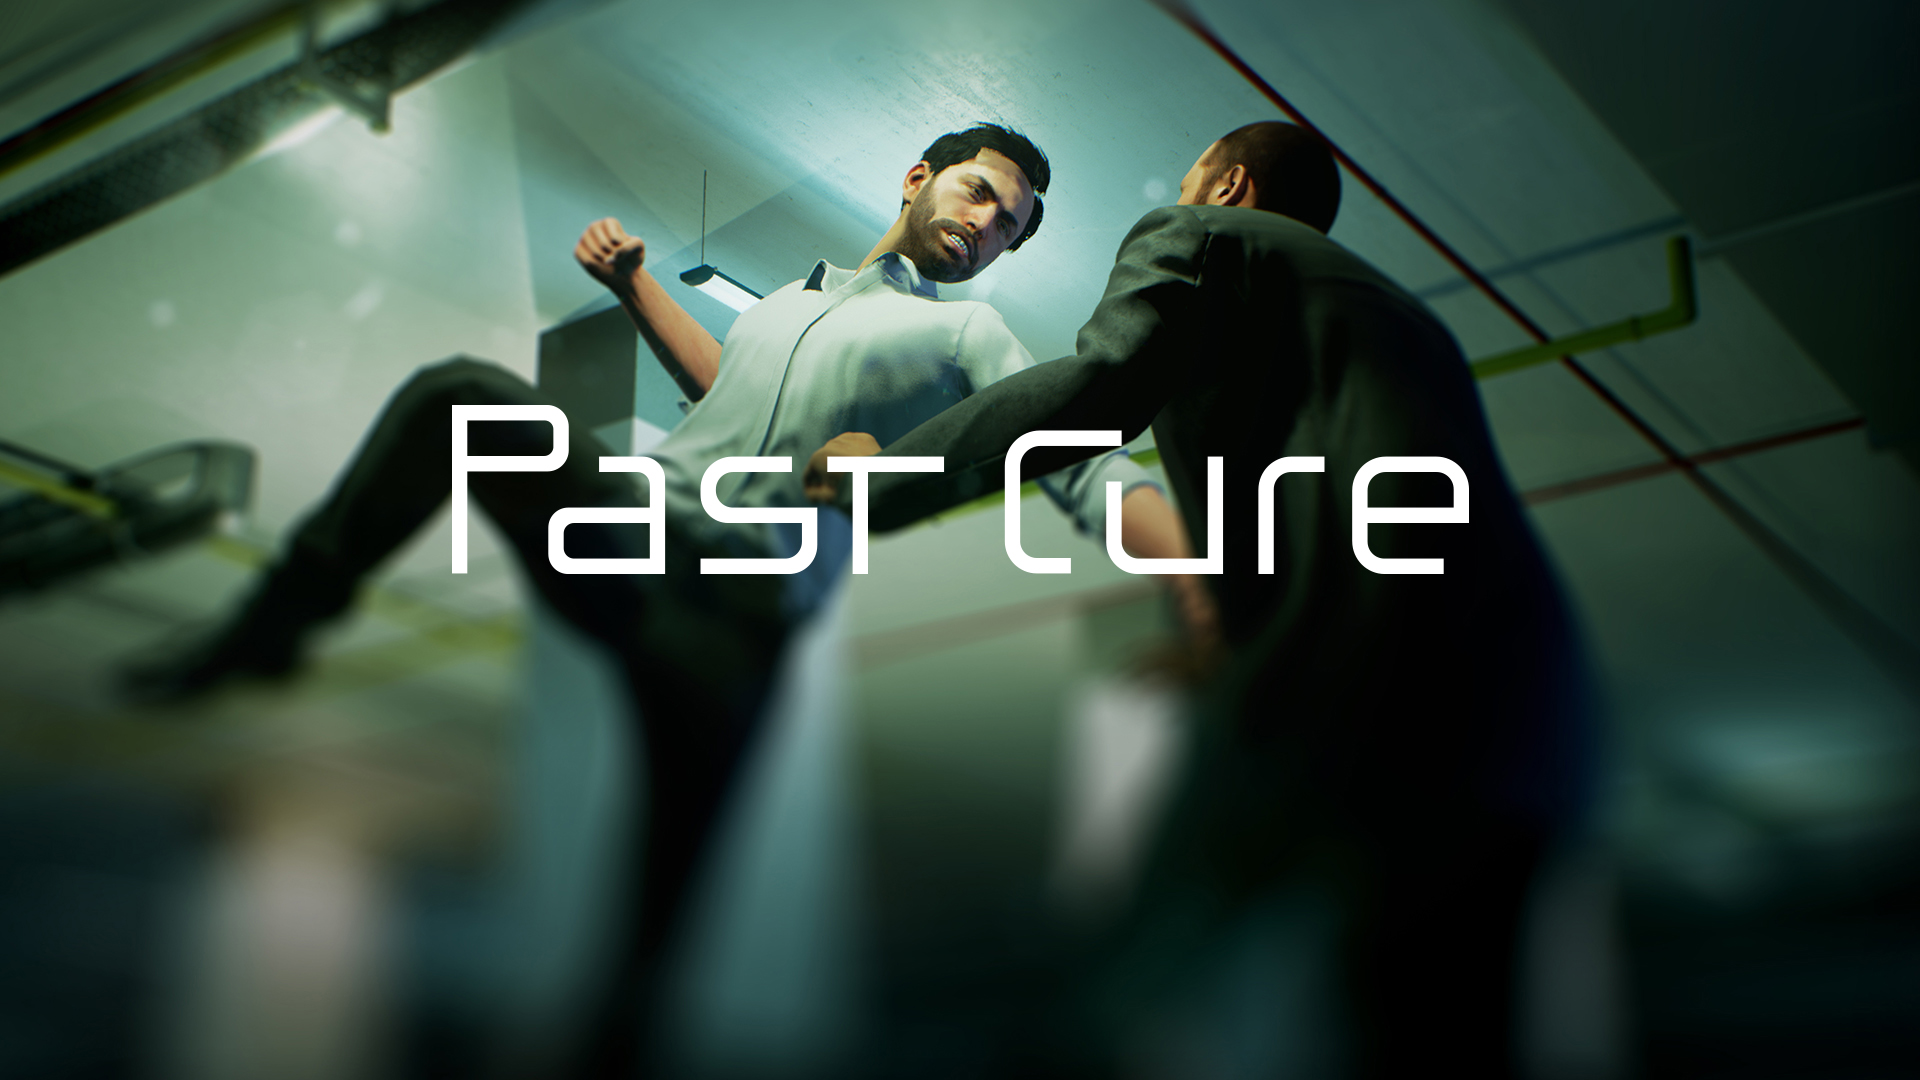 PAST-CURE-Screenshot-0-Phantom8Studio.jpg?fit=1920%2C1080&ssl=1